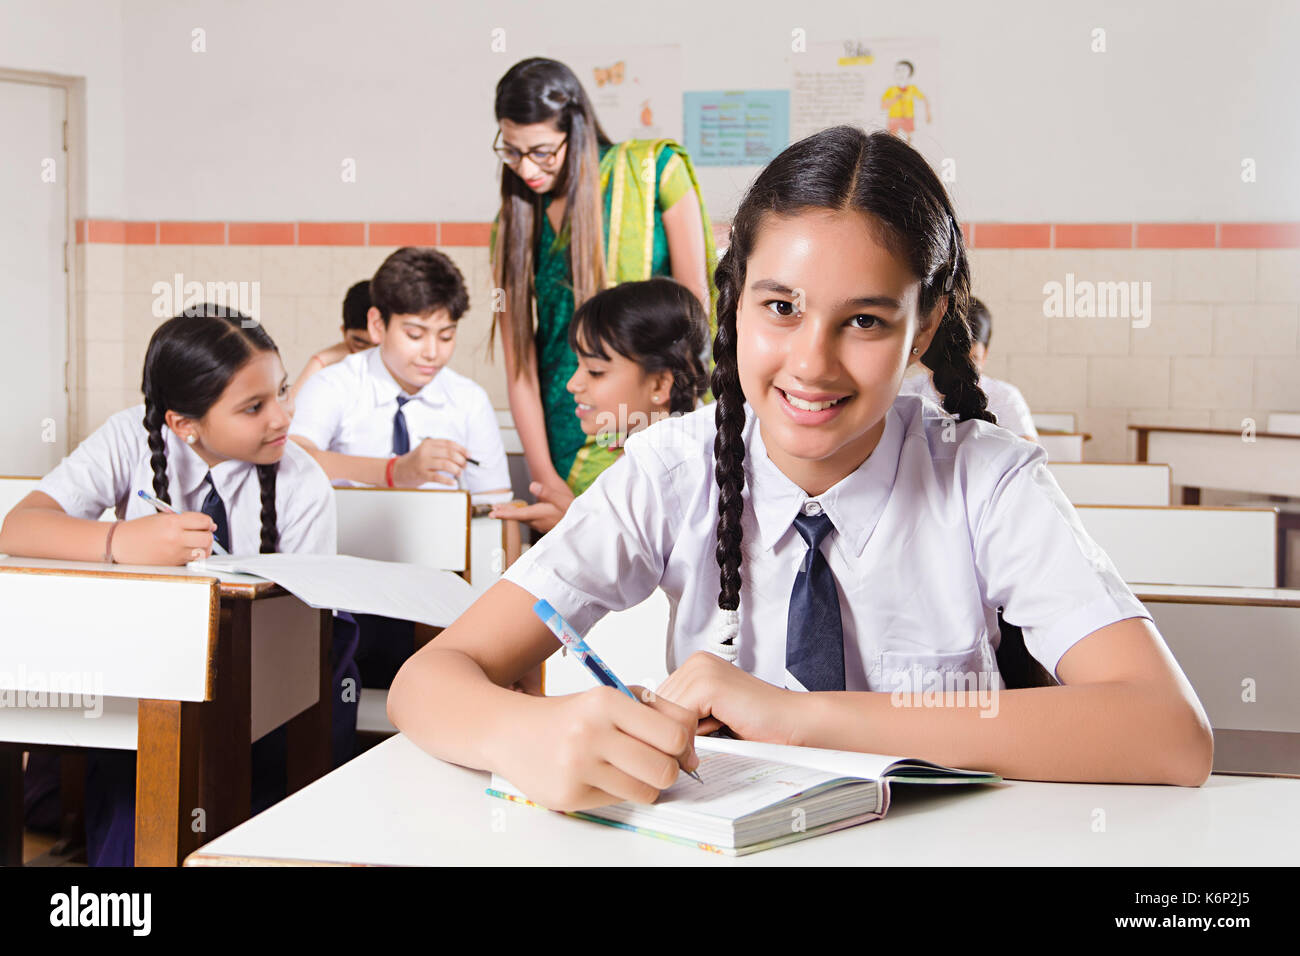 smiling 1 school girl student writing note book studying in